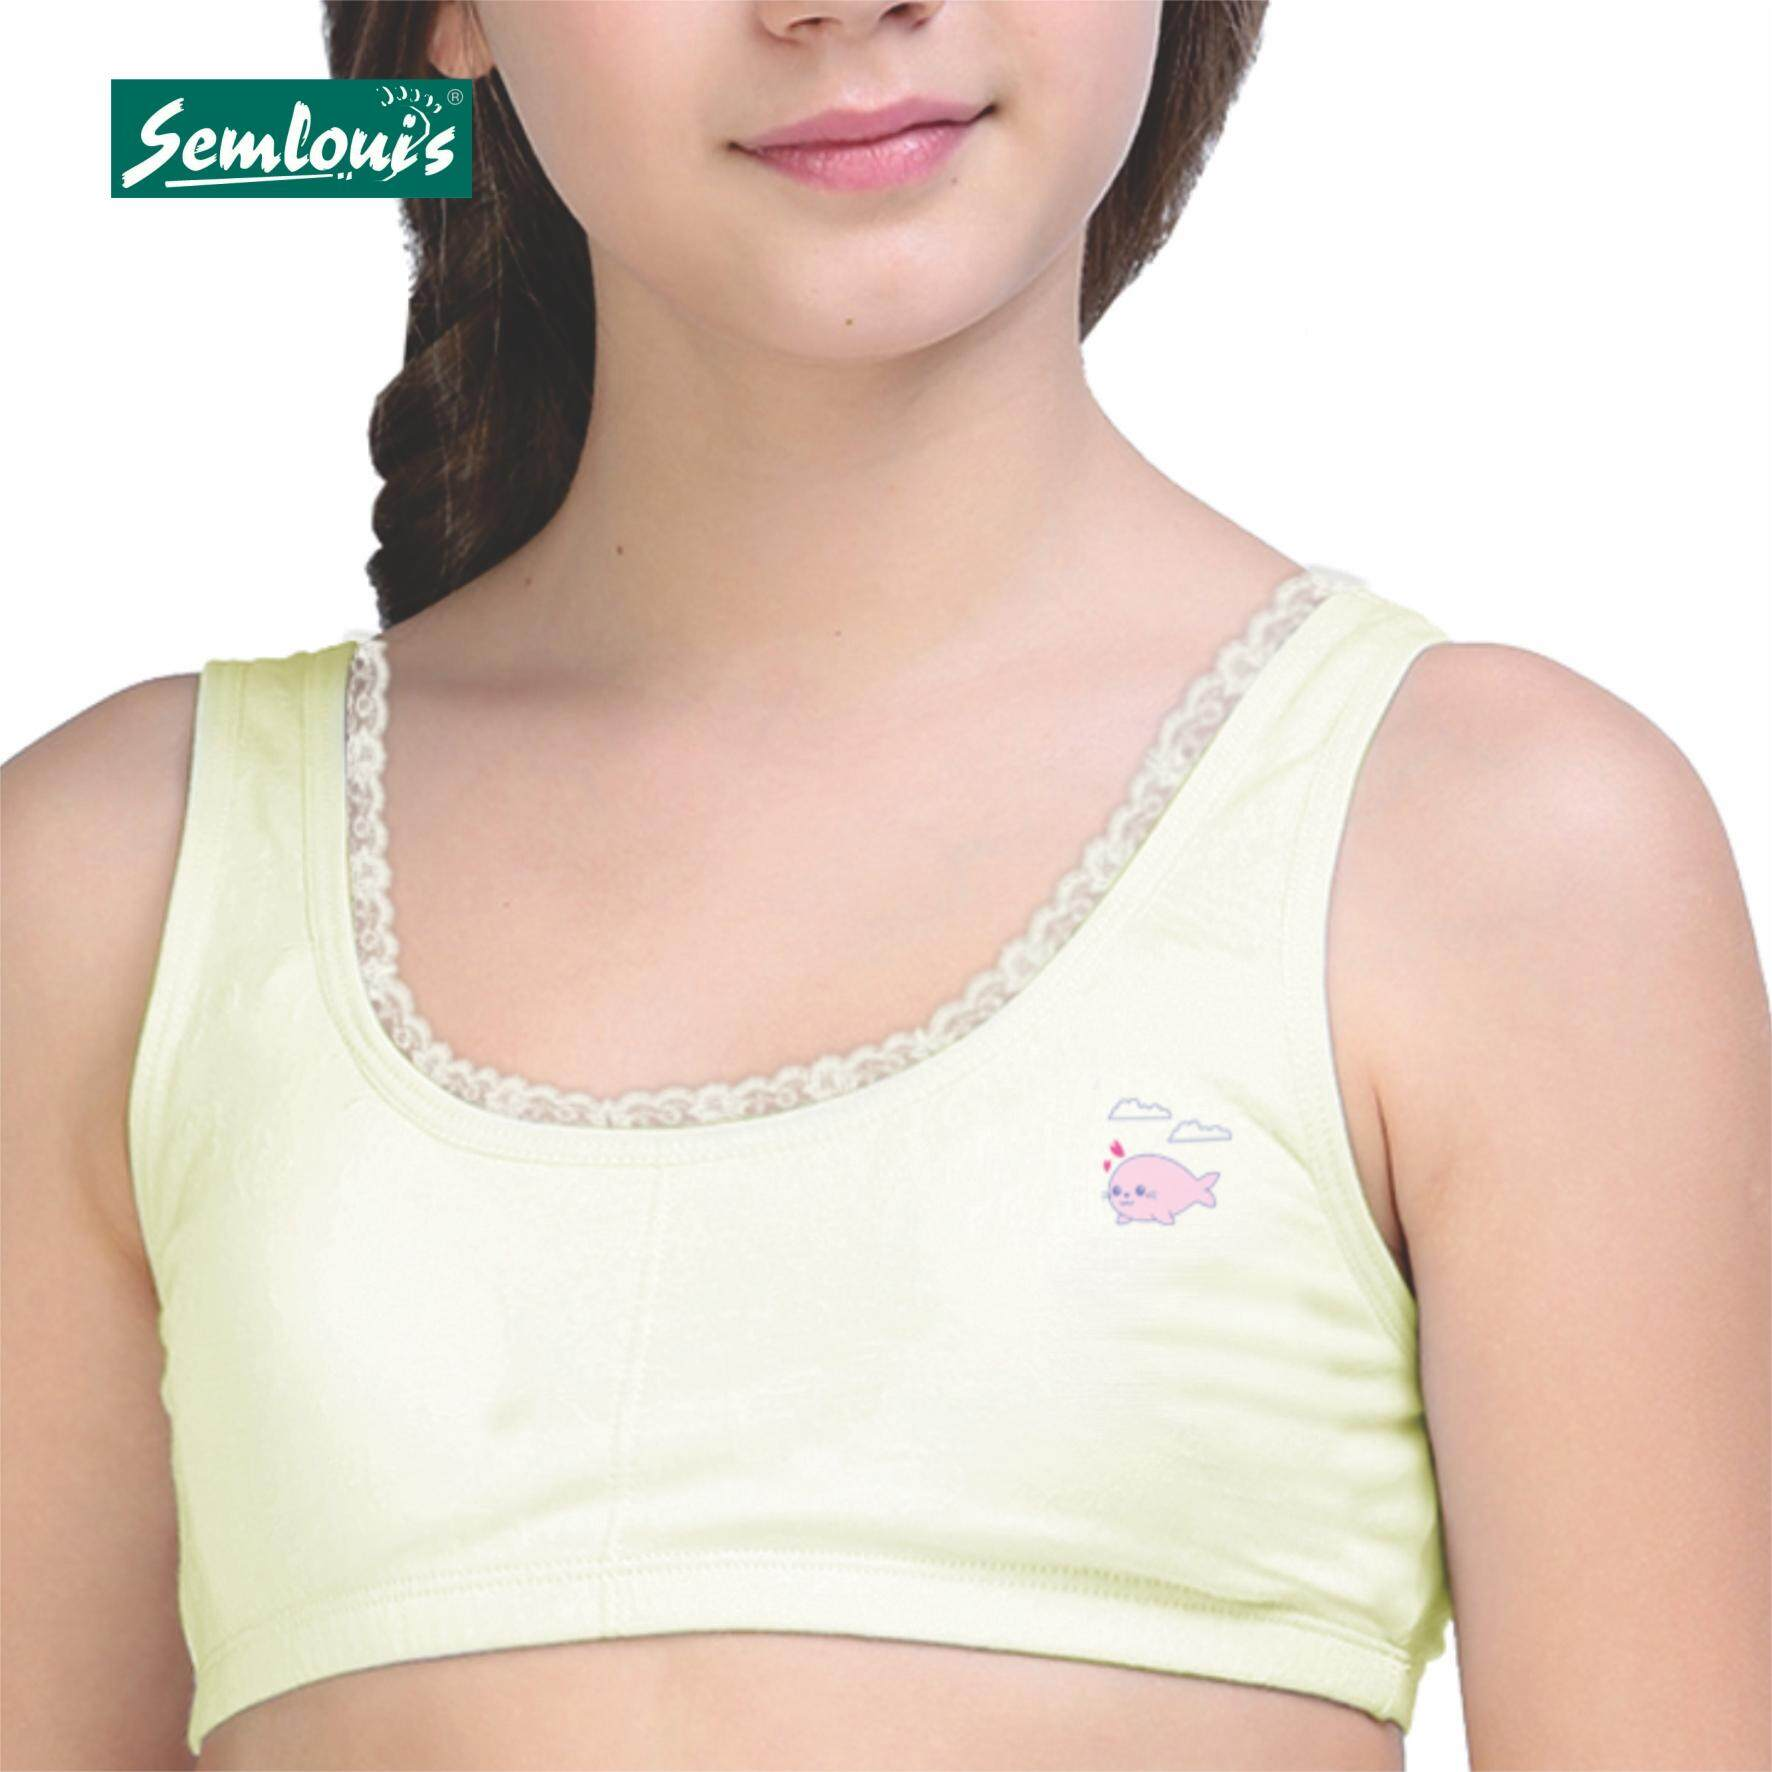 Semlouis Kid Bralette -Lace Edge / PCS